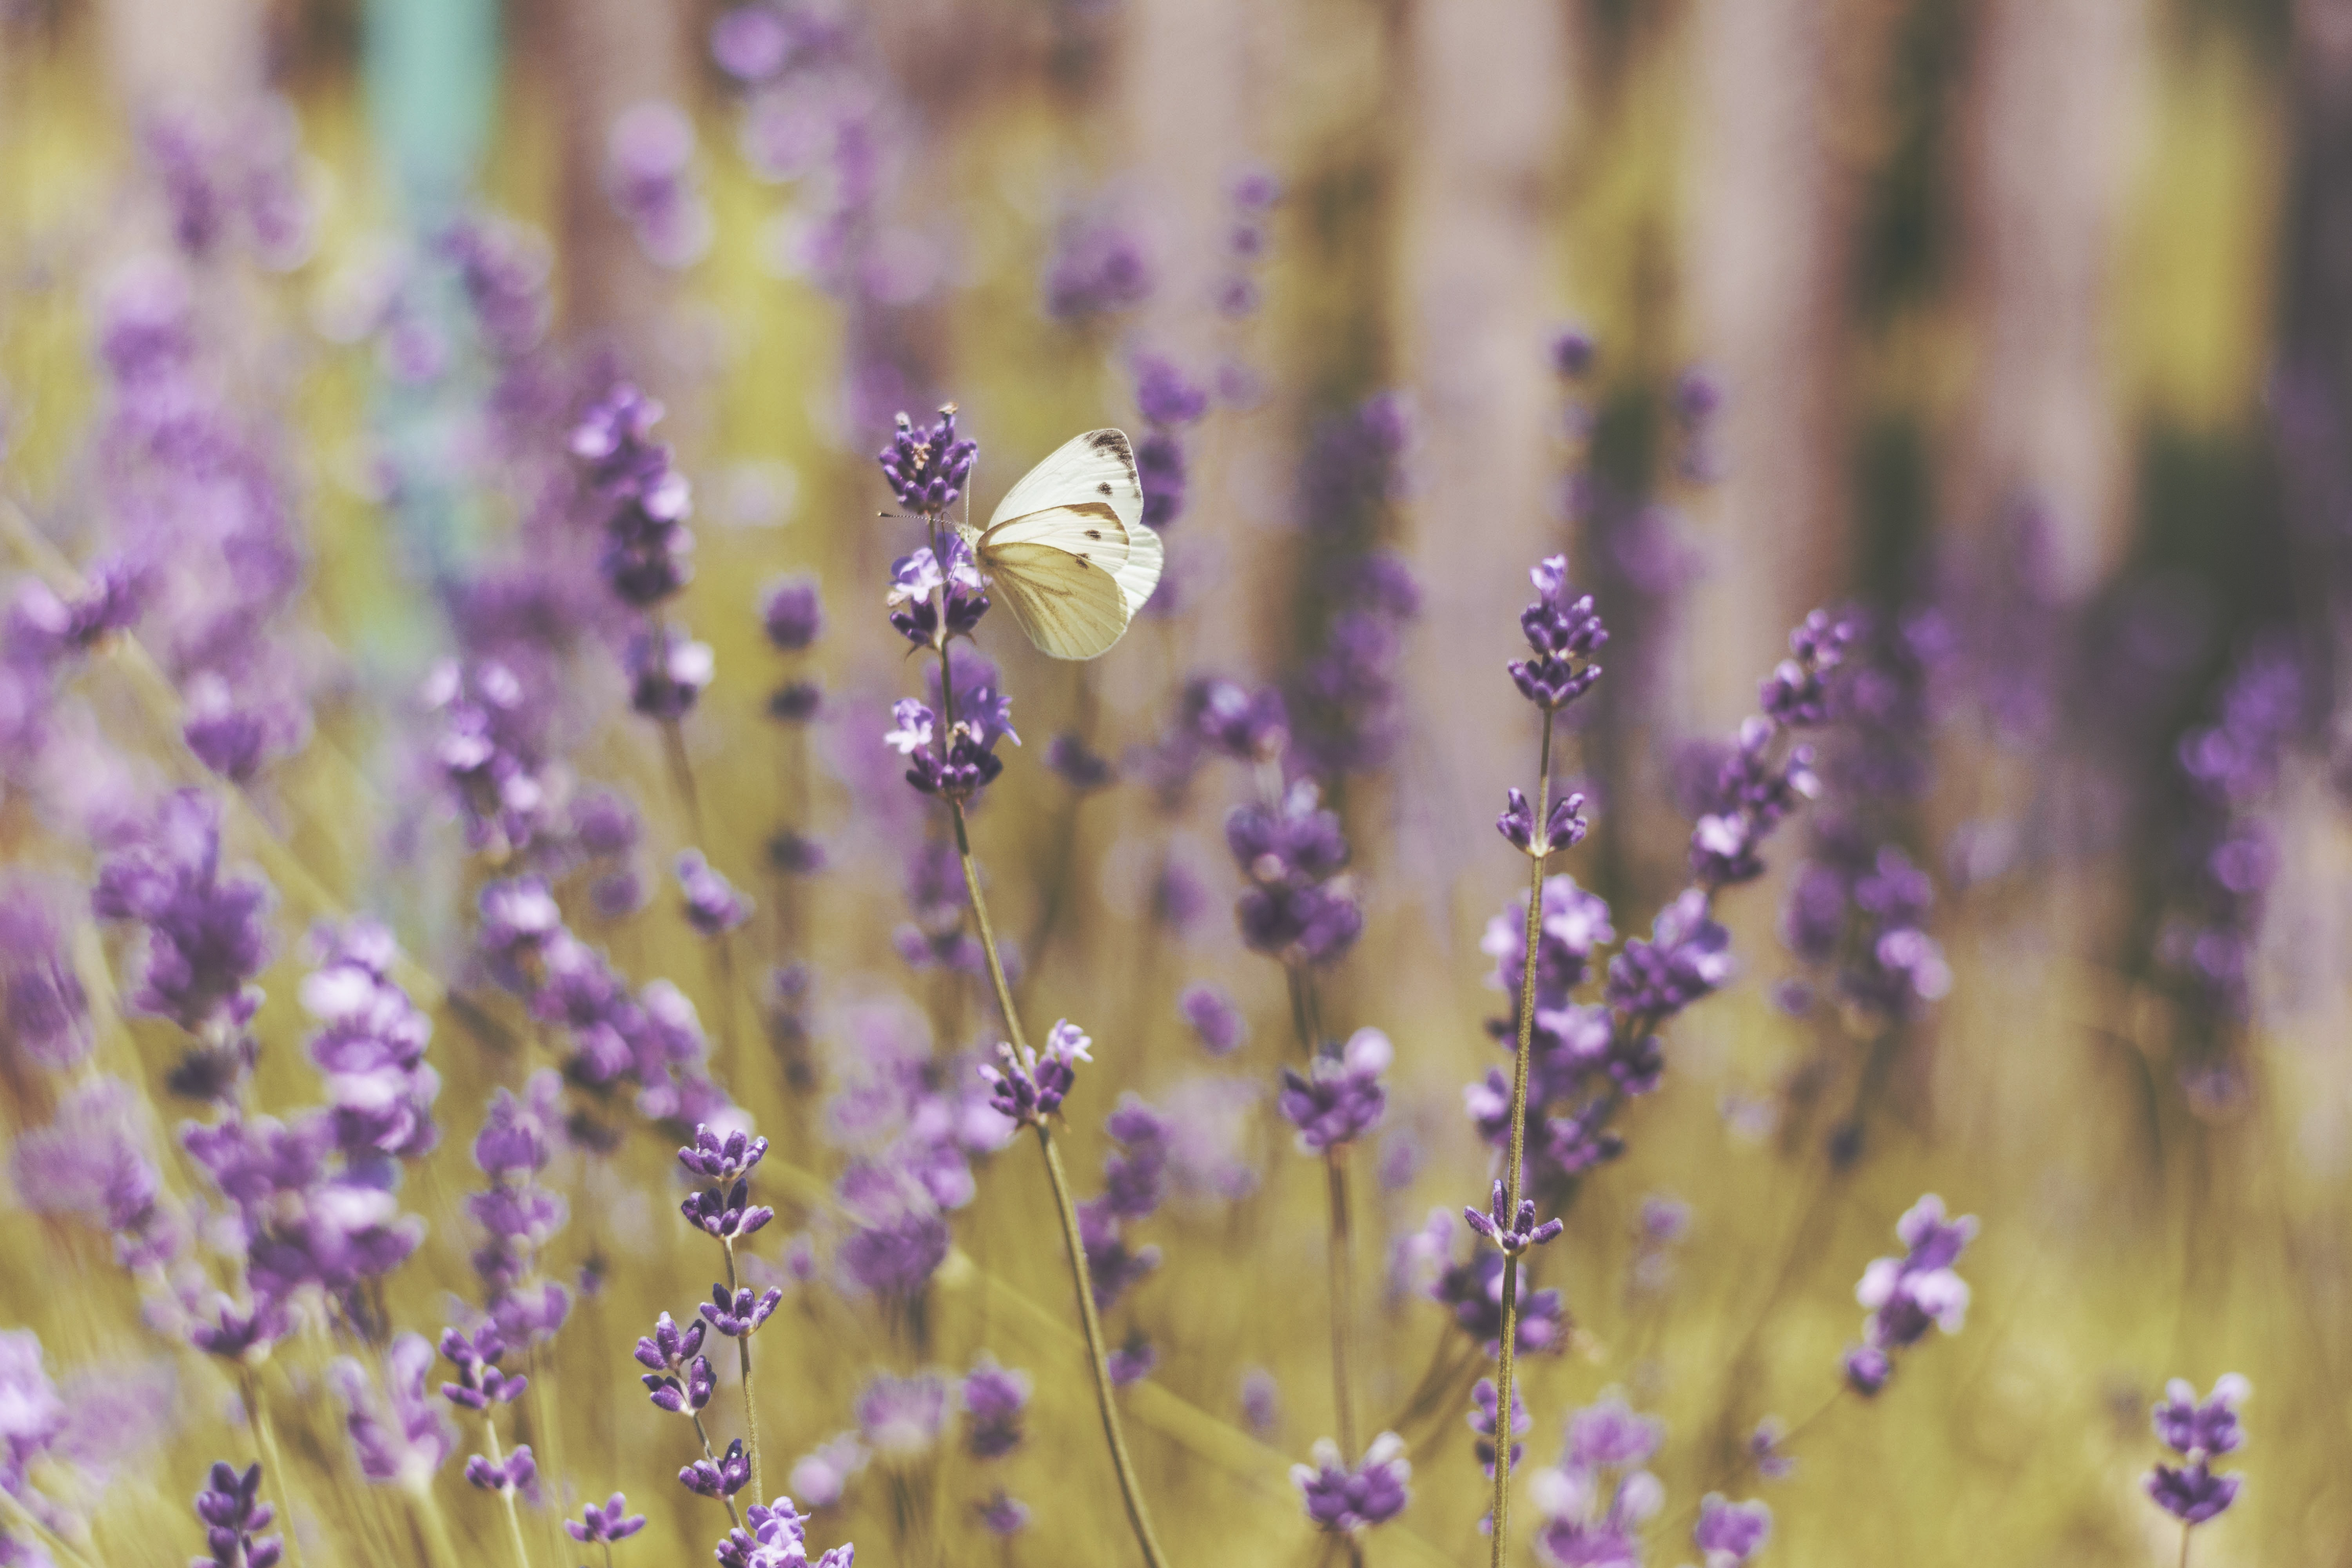 A white butterfly on lavender flowers